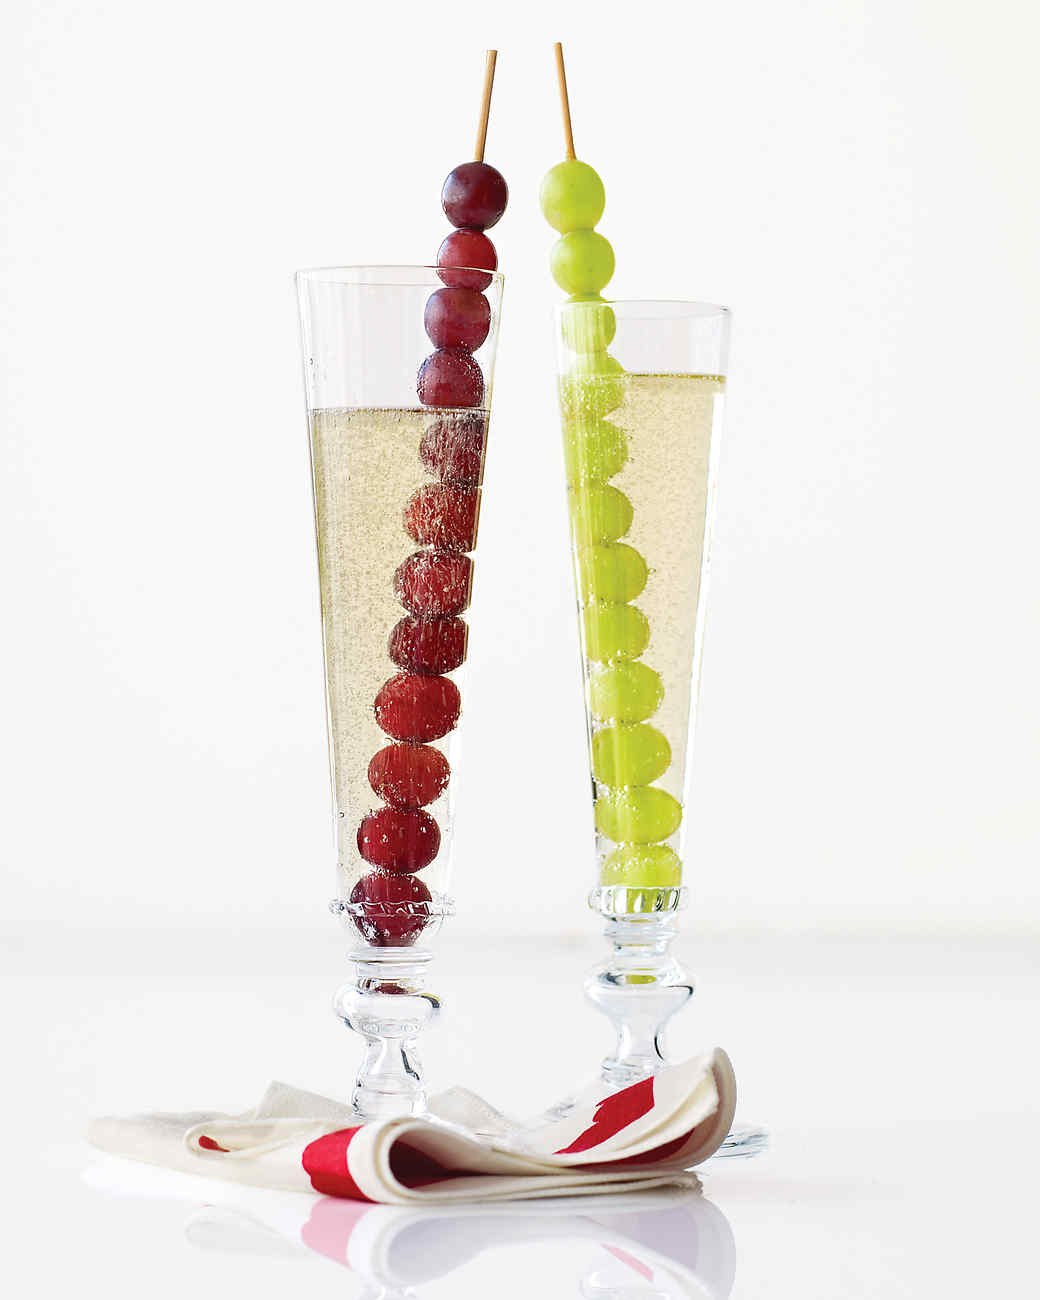 New Year's Champagne with Grapes